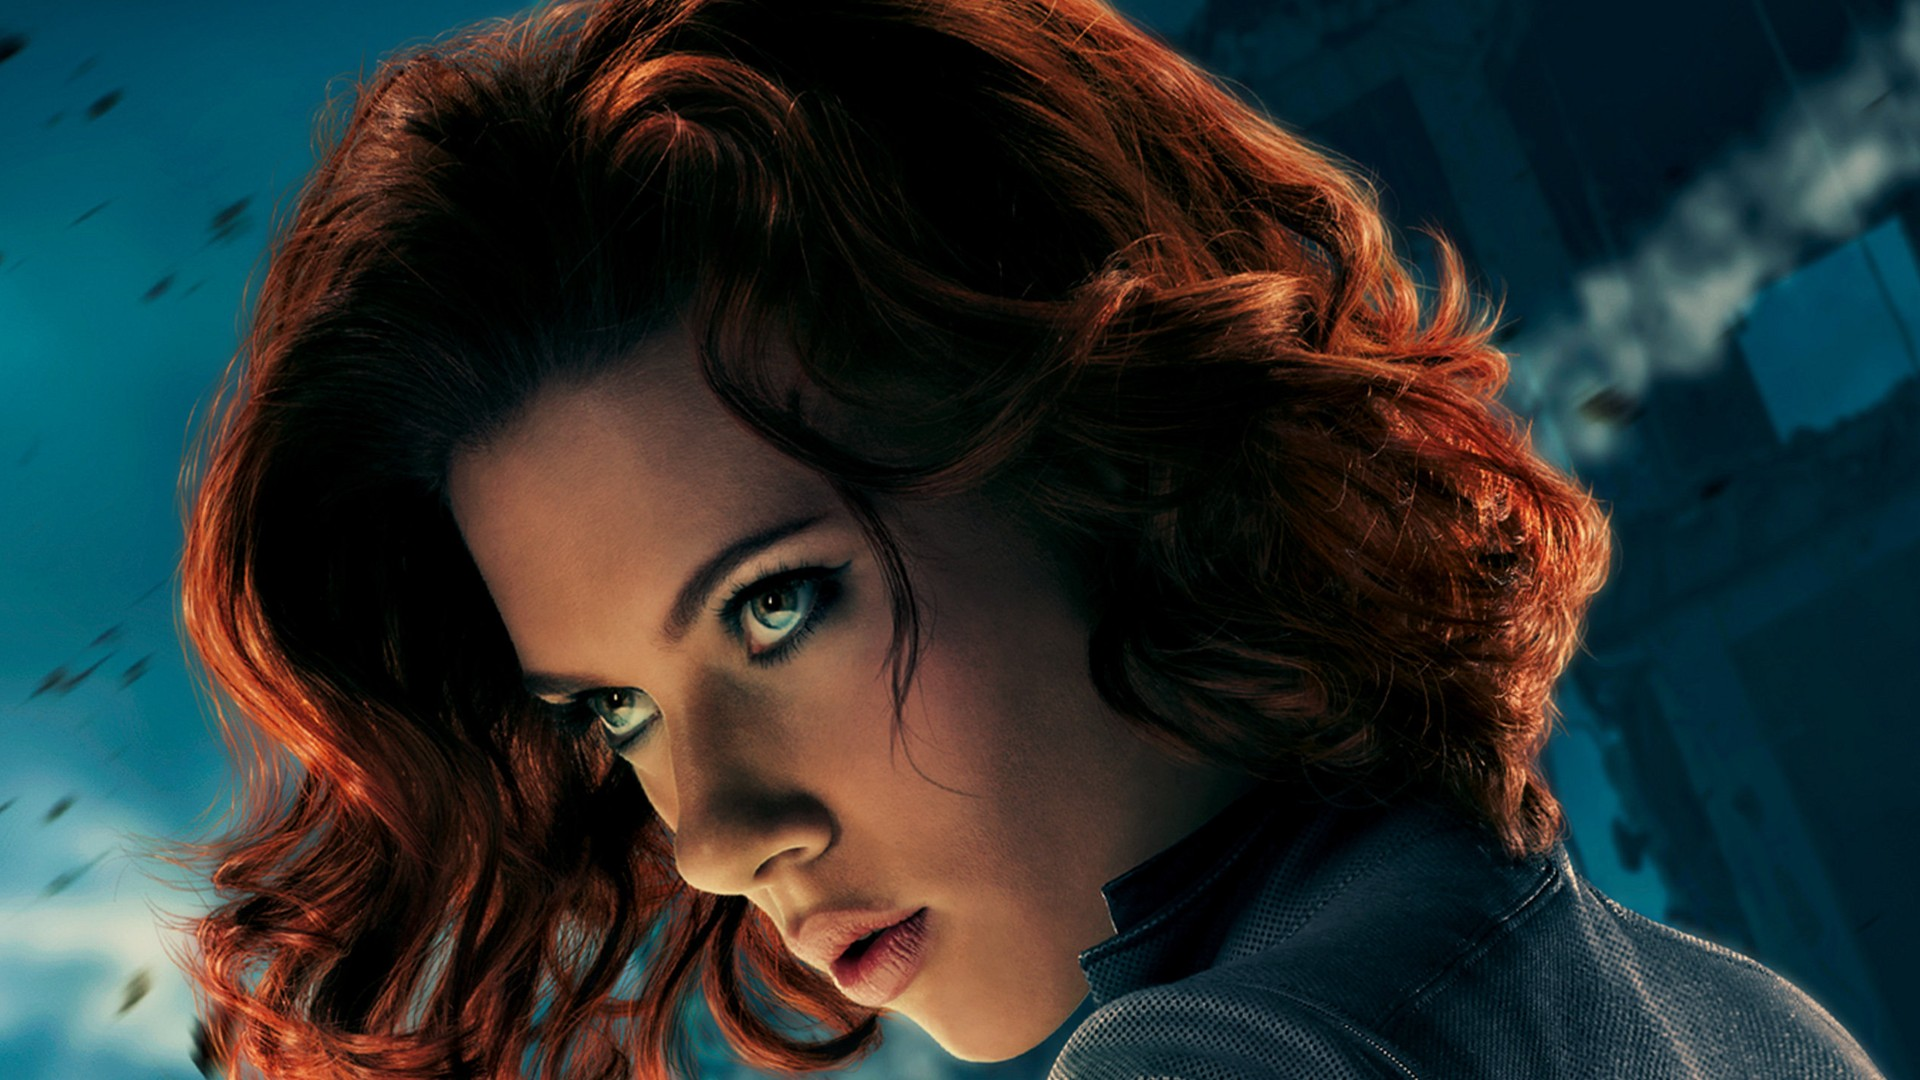 Black Widow Marvel Comics The Avengers Movie Wallpaper